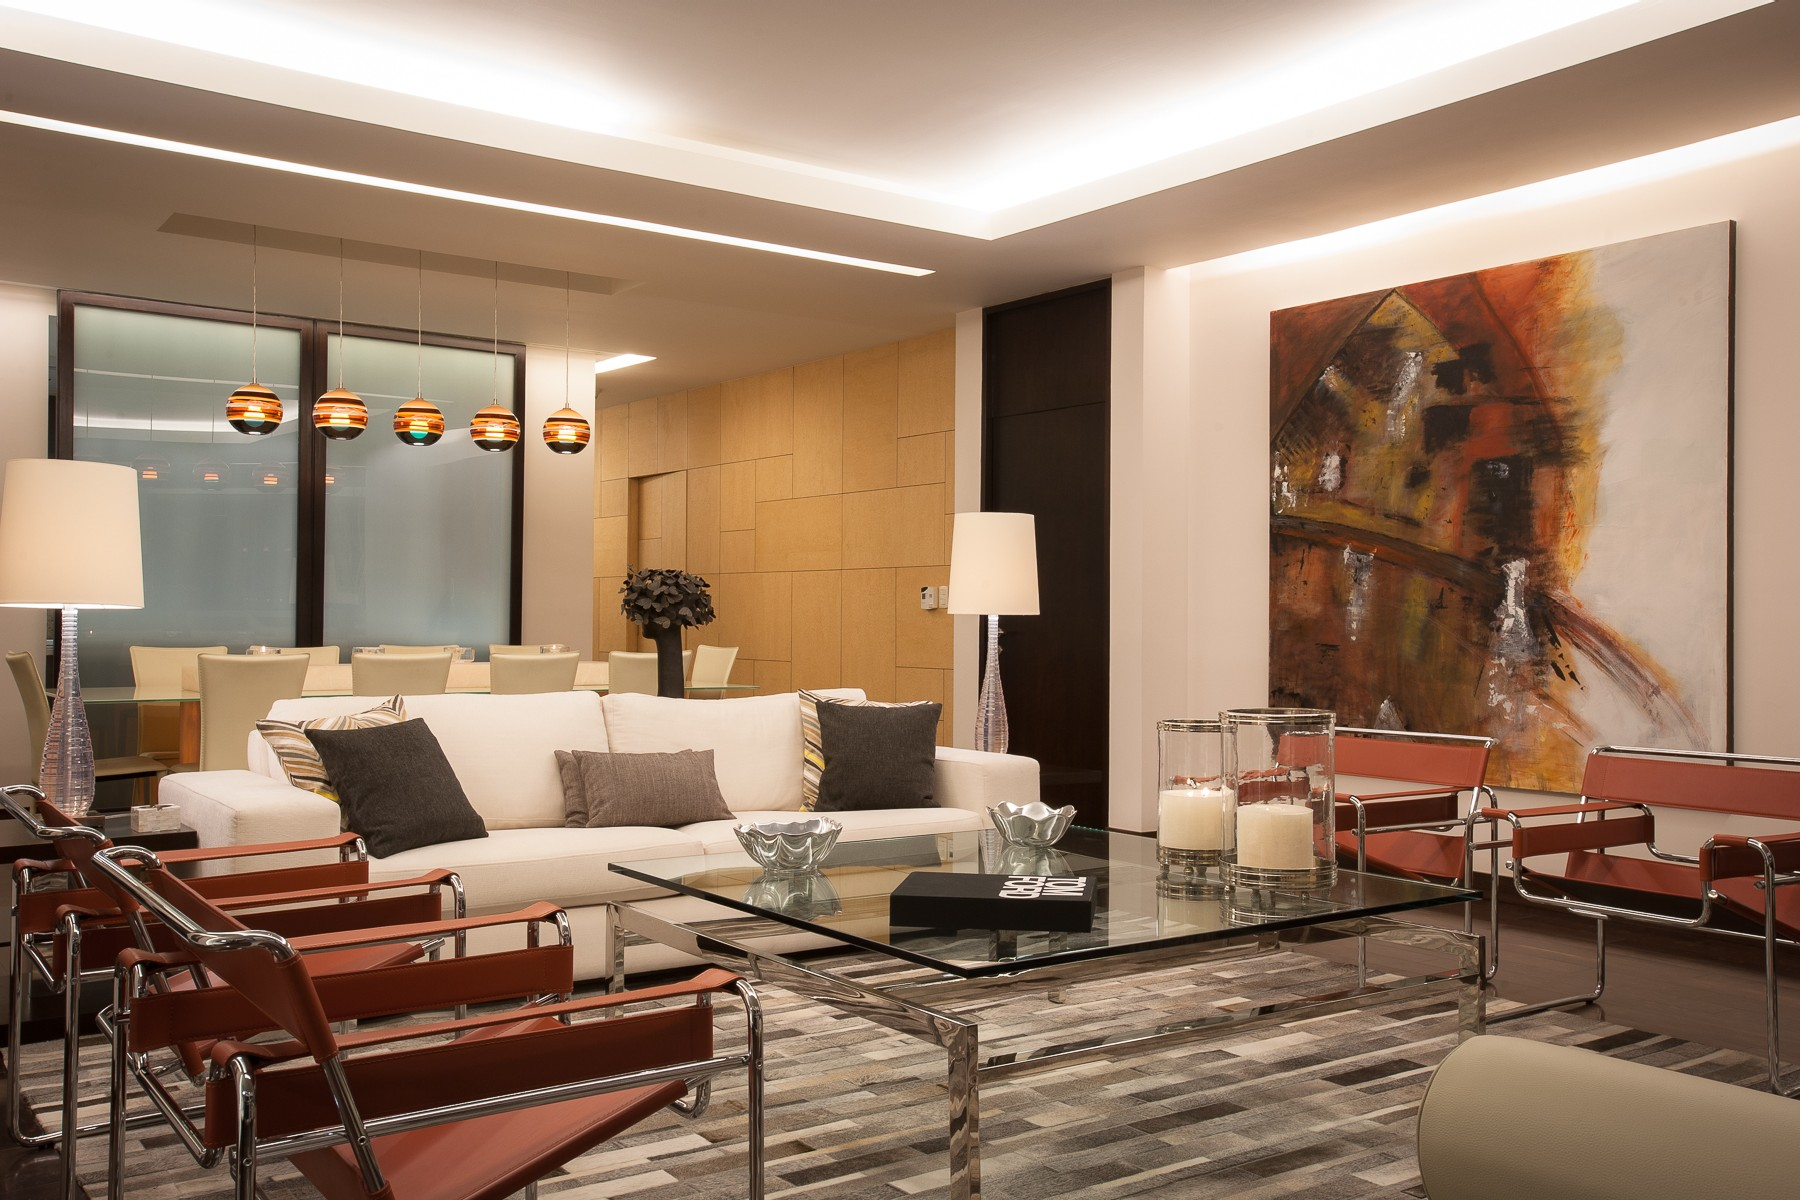 Additional photo for property listing at Pent House St. Regis Residence , Mexico City Av. Paseo de la Reforma 439 St. Regis Residences Federal District, Mexico Df 06500 Mexico